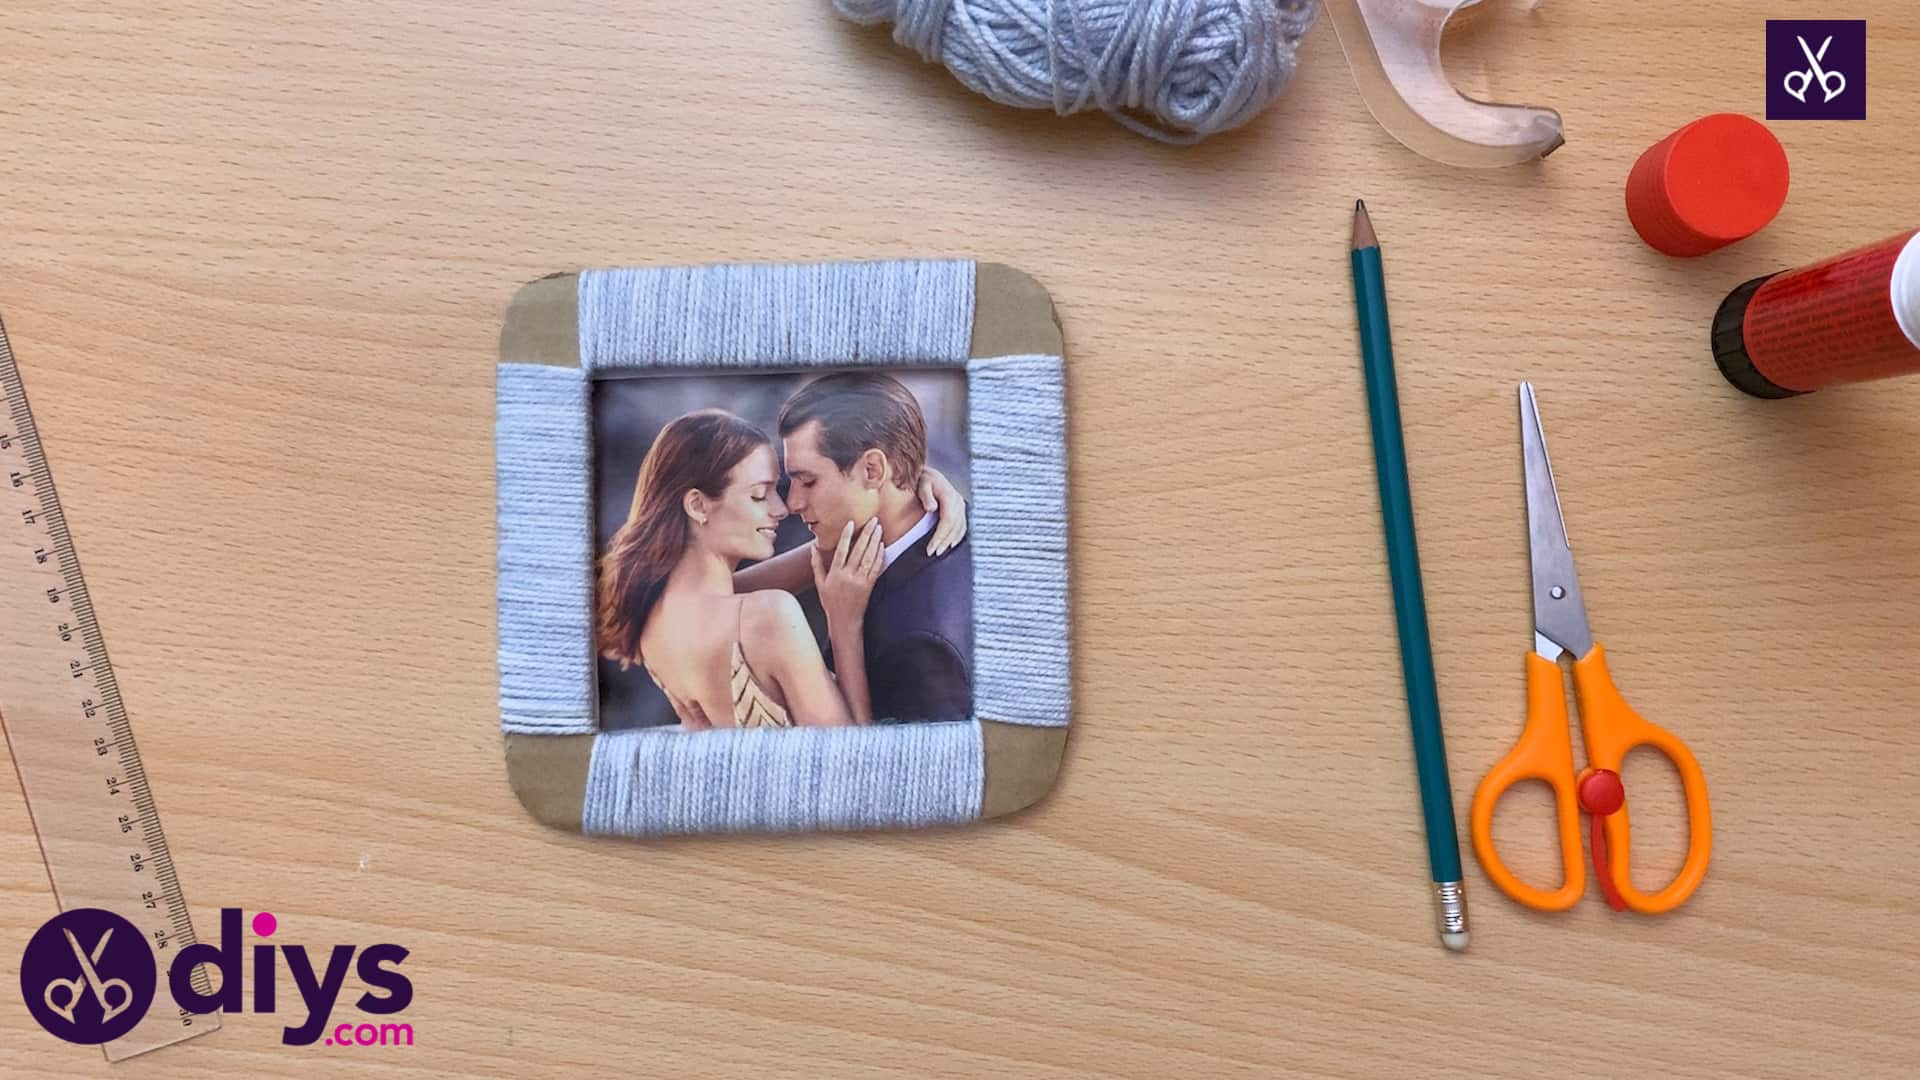 How to make a cardboard photo frame diy craft